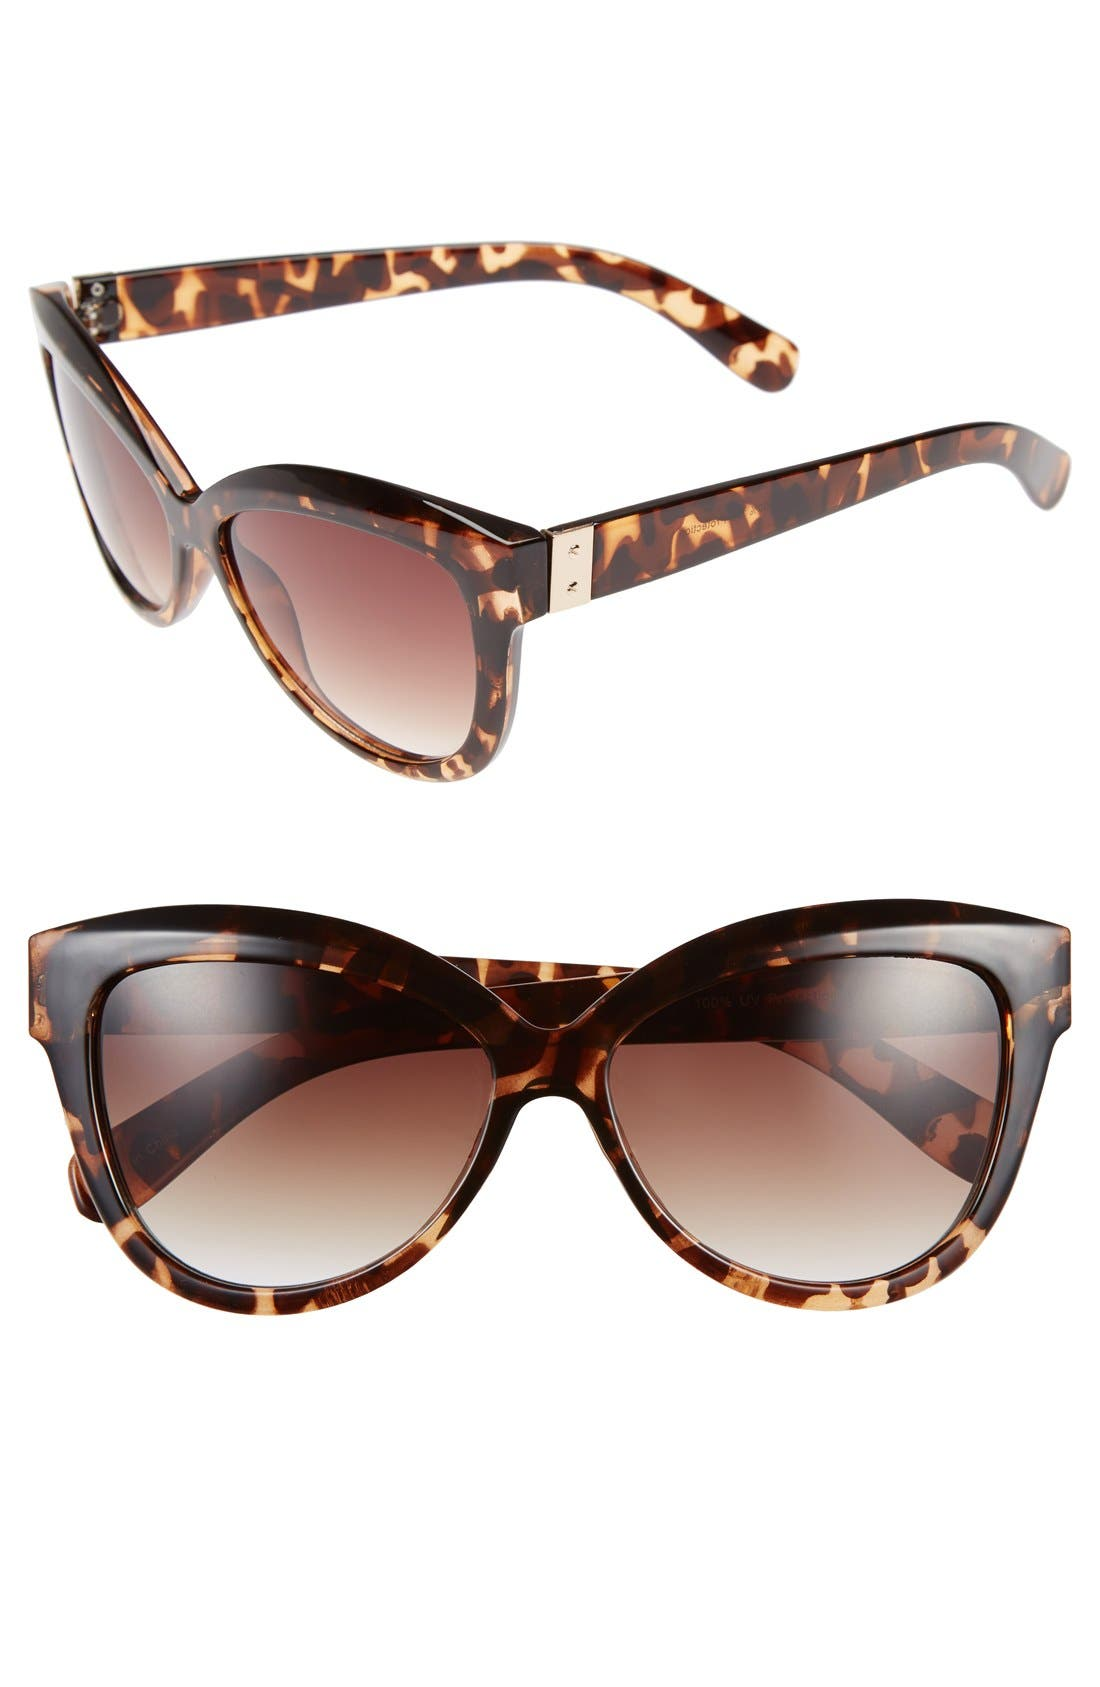 60mm Round Sunglasses,                             Main thumbnail 1, color,                             Tortoise